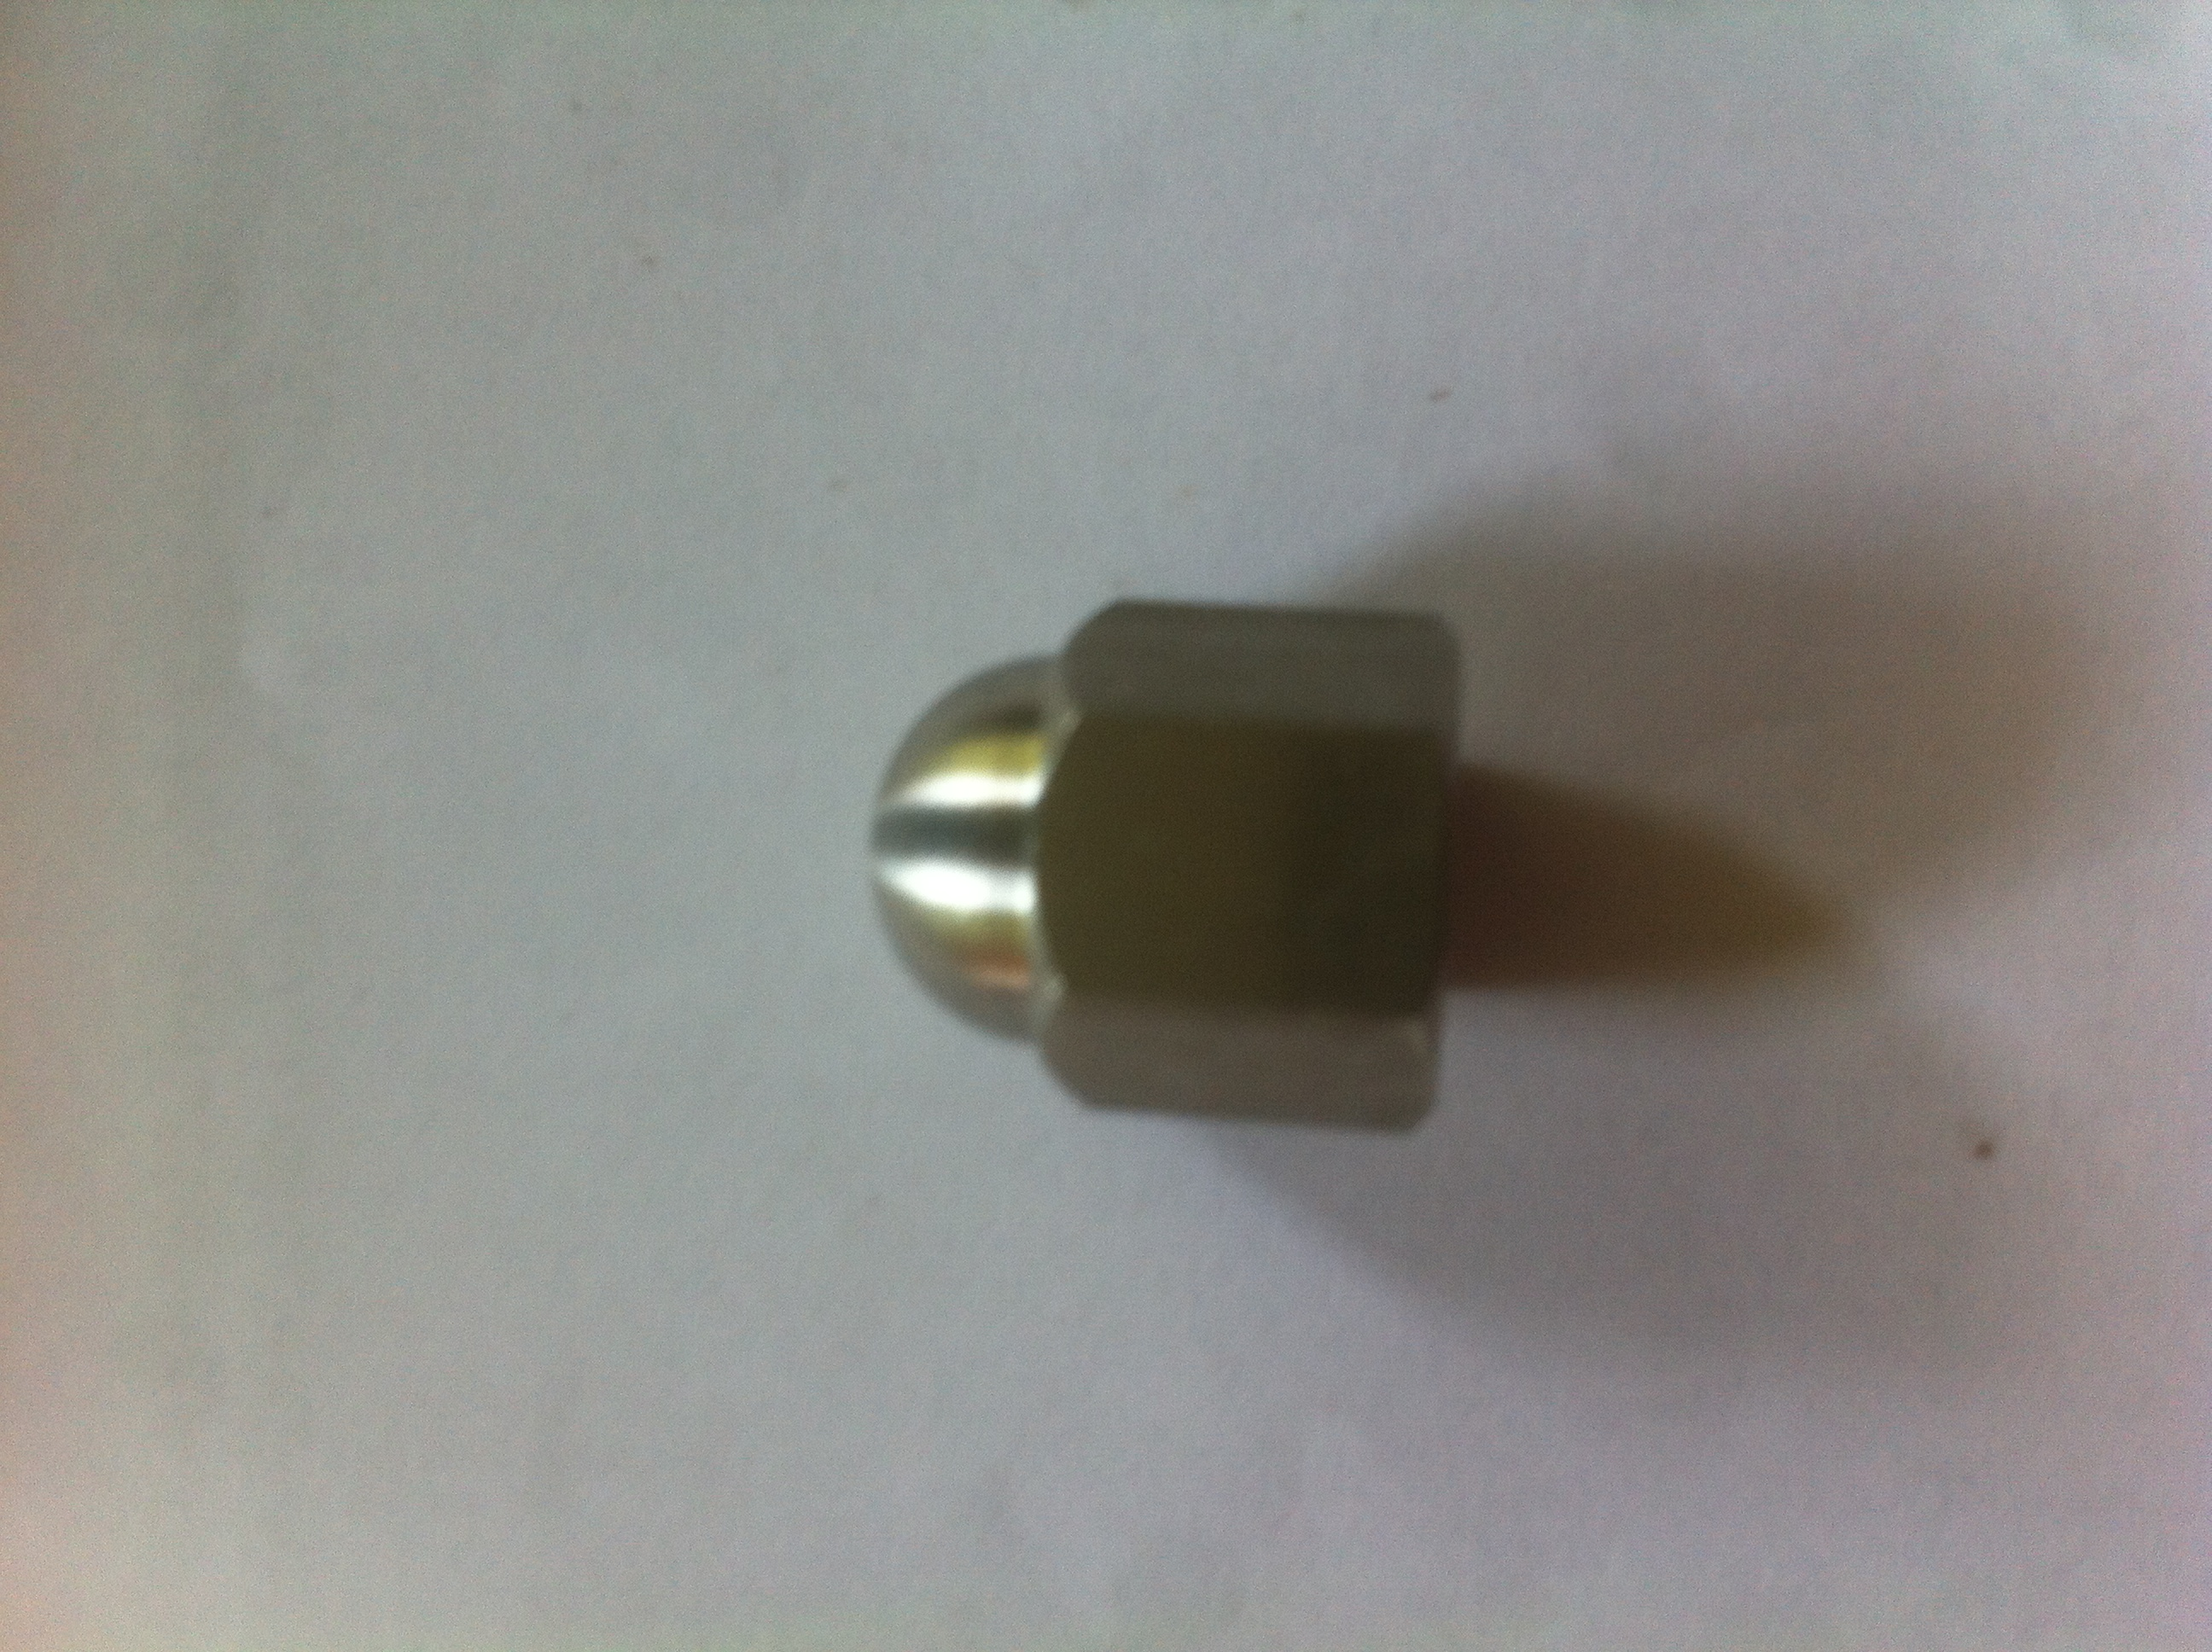 M10-1.25 Dome/Acorn Nut Part number 92020-003